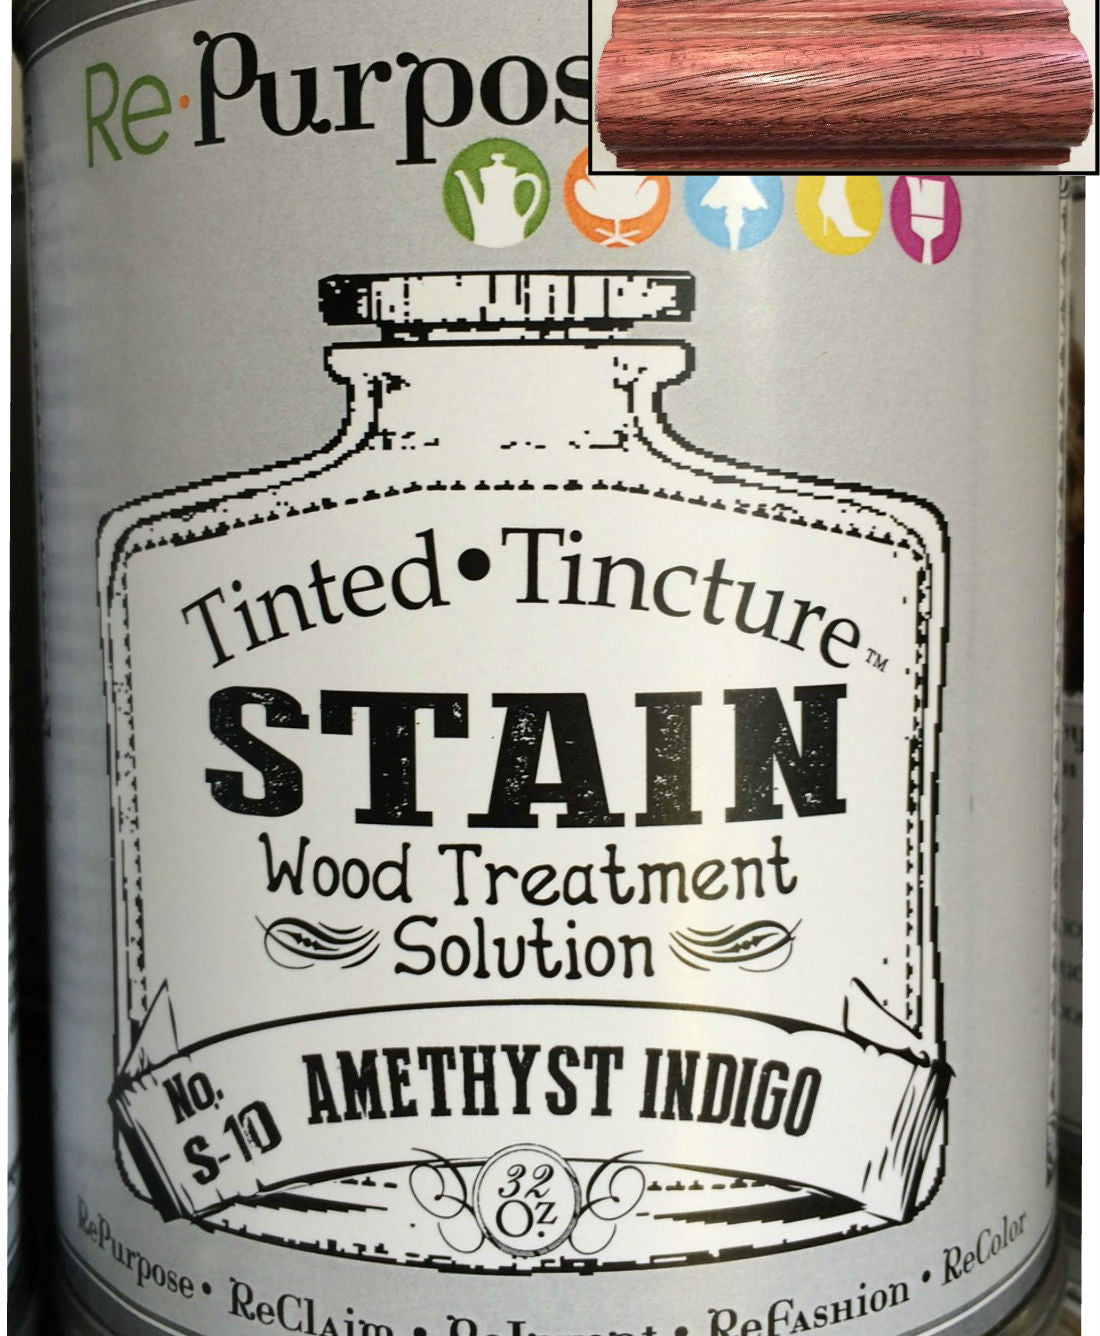 Tinted•Tincture Stain Wood Treatment Solution- Amethyst Indigo